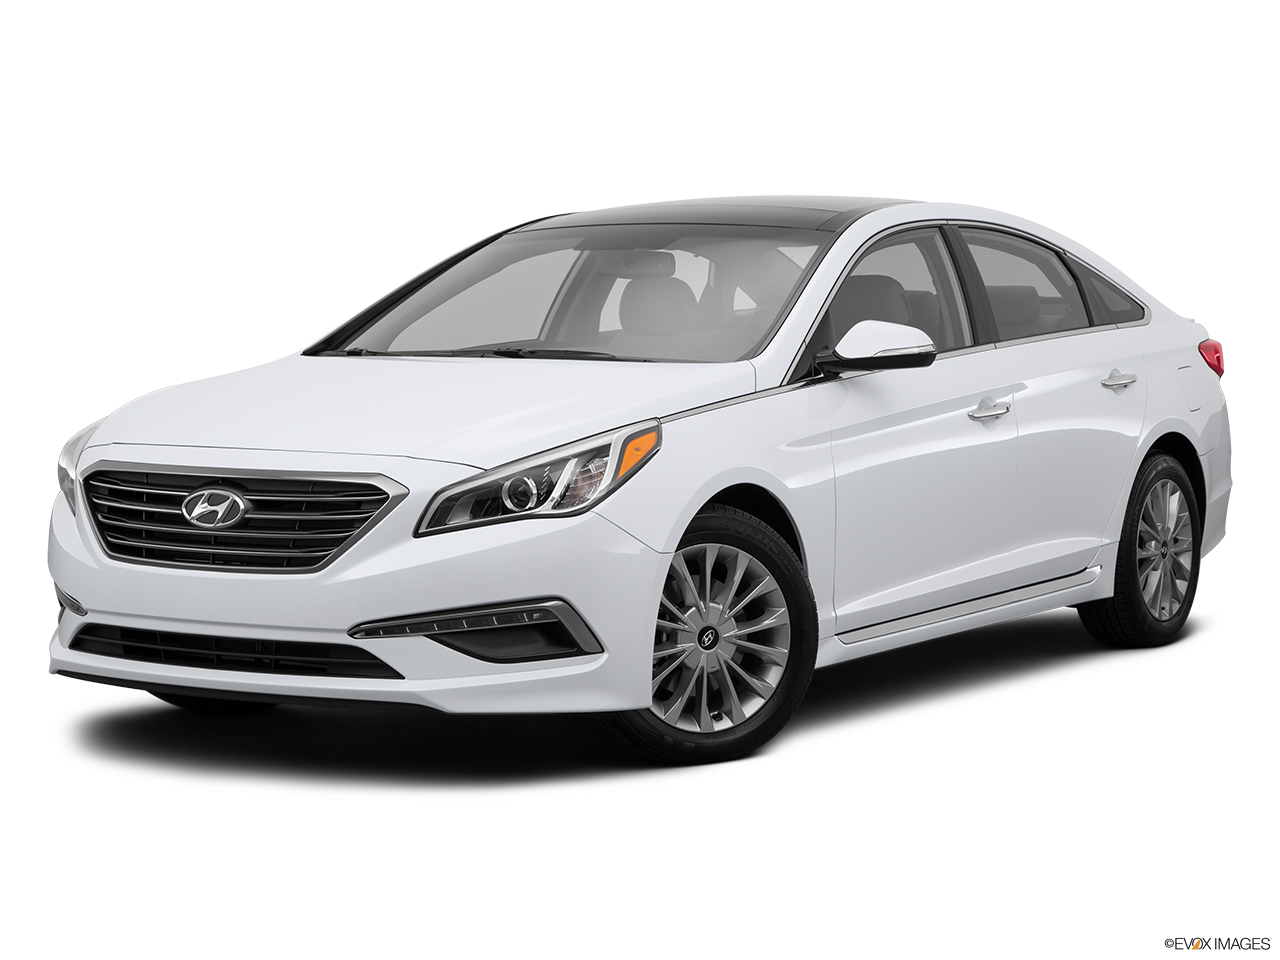 hyundai sonata, photo #1